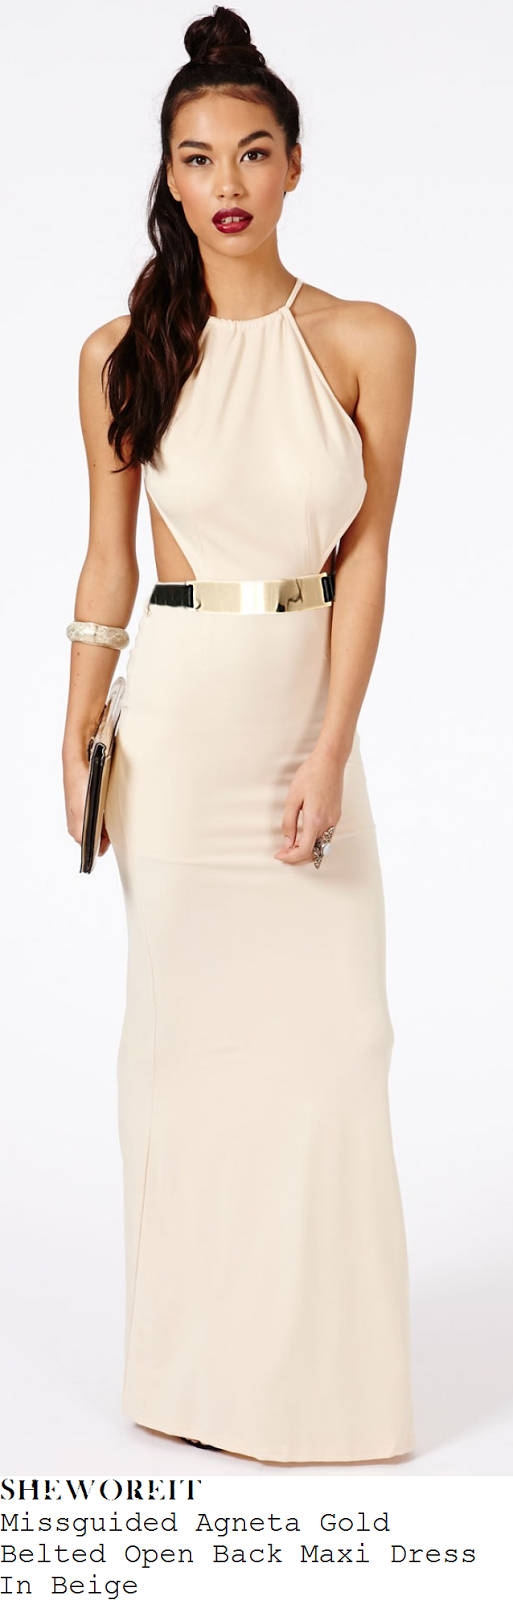 tamera-foster-cream-white-beige-sleeveless-open-back-maxi-dress-hello-magazine